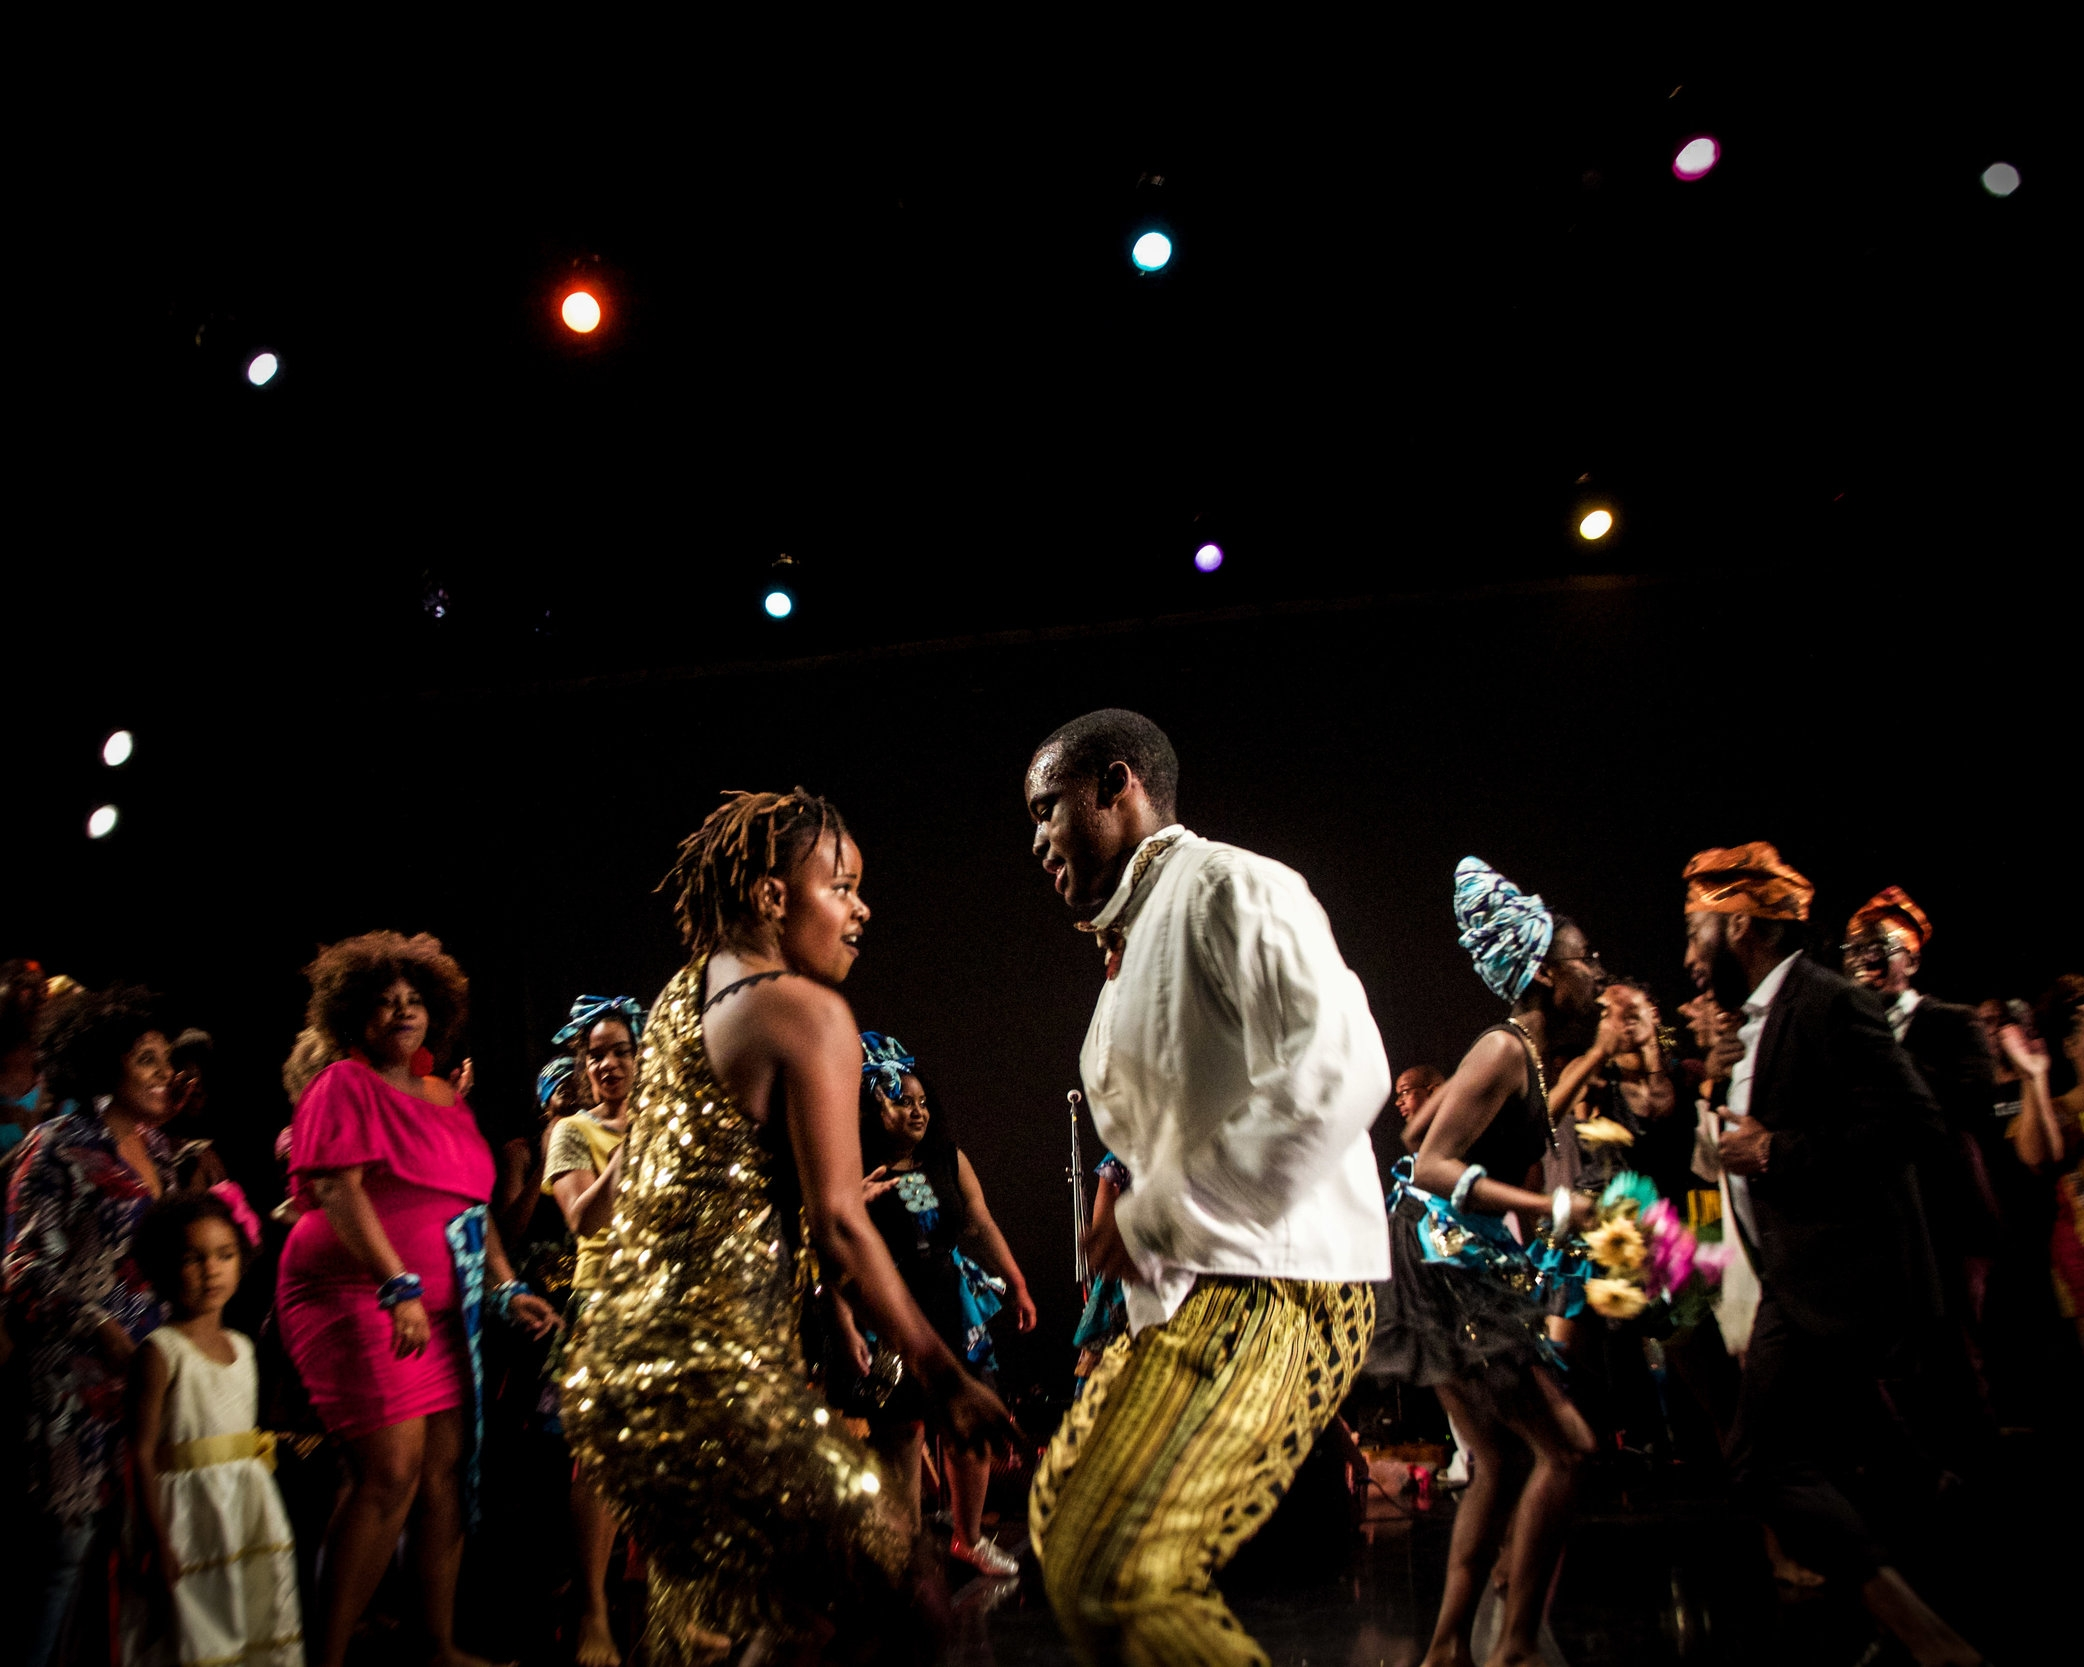 11.17 & 18 | 8PMThe Show- San Francisco - What Had Happened Was…An Afro Urban MusicalA hot-blooded piece of dance, storytelling, afrobeats, blues, dancehall, soukous, & visuals!Dance Mission Theater: 3316 24th Street, SF